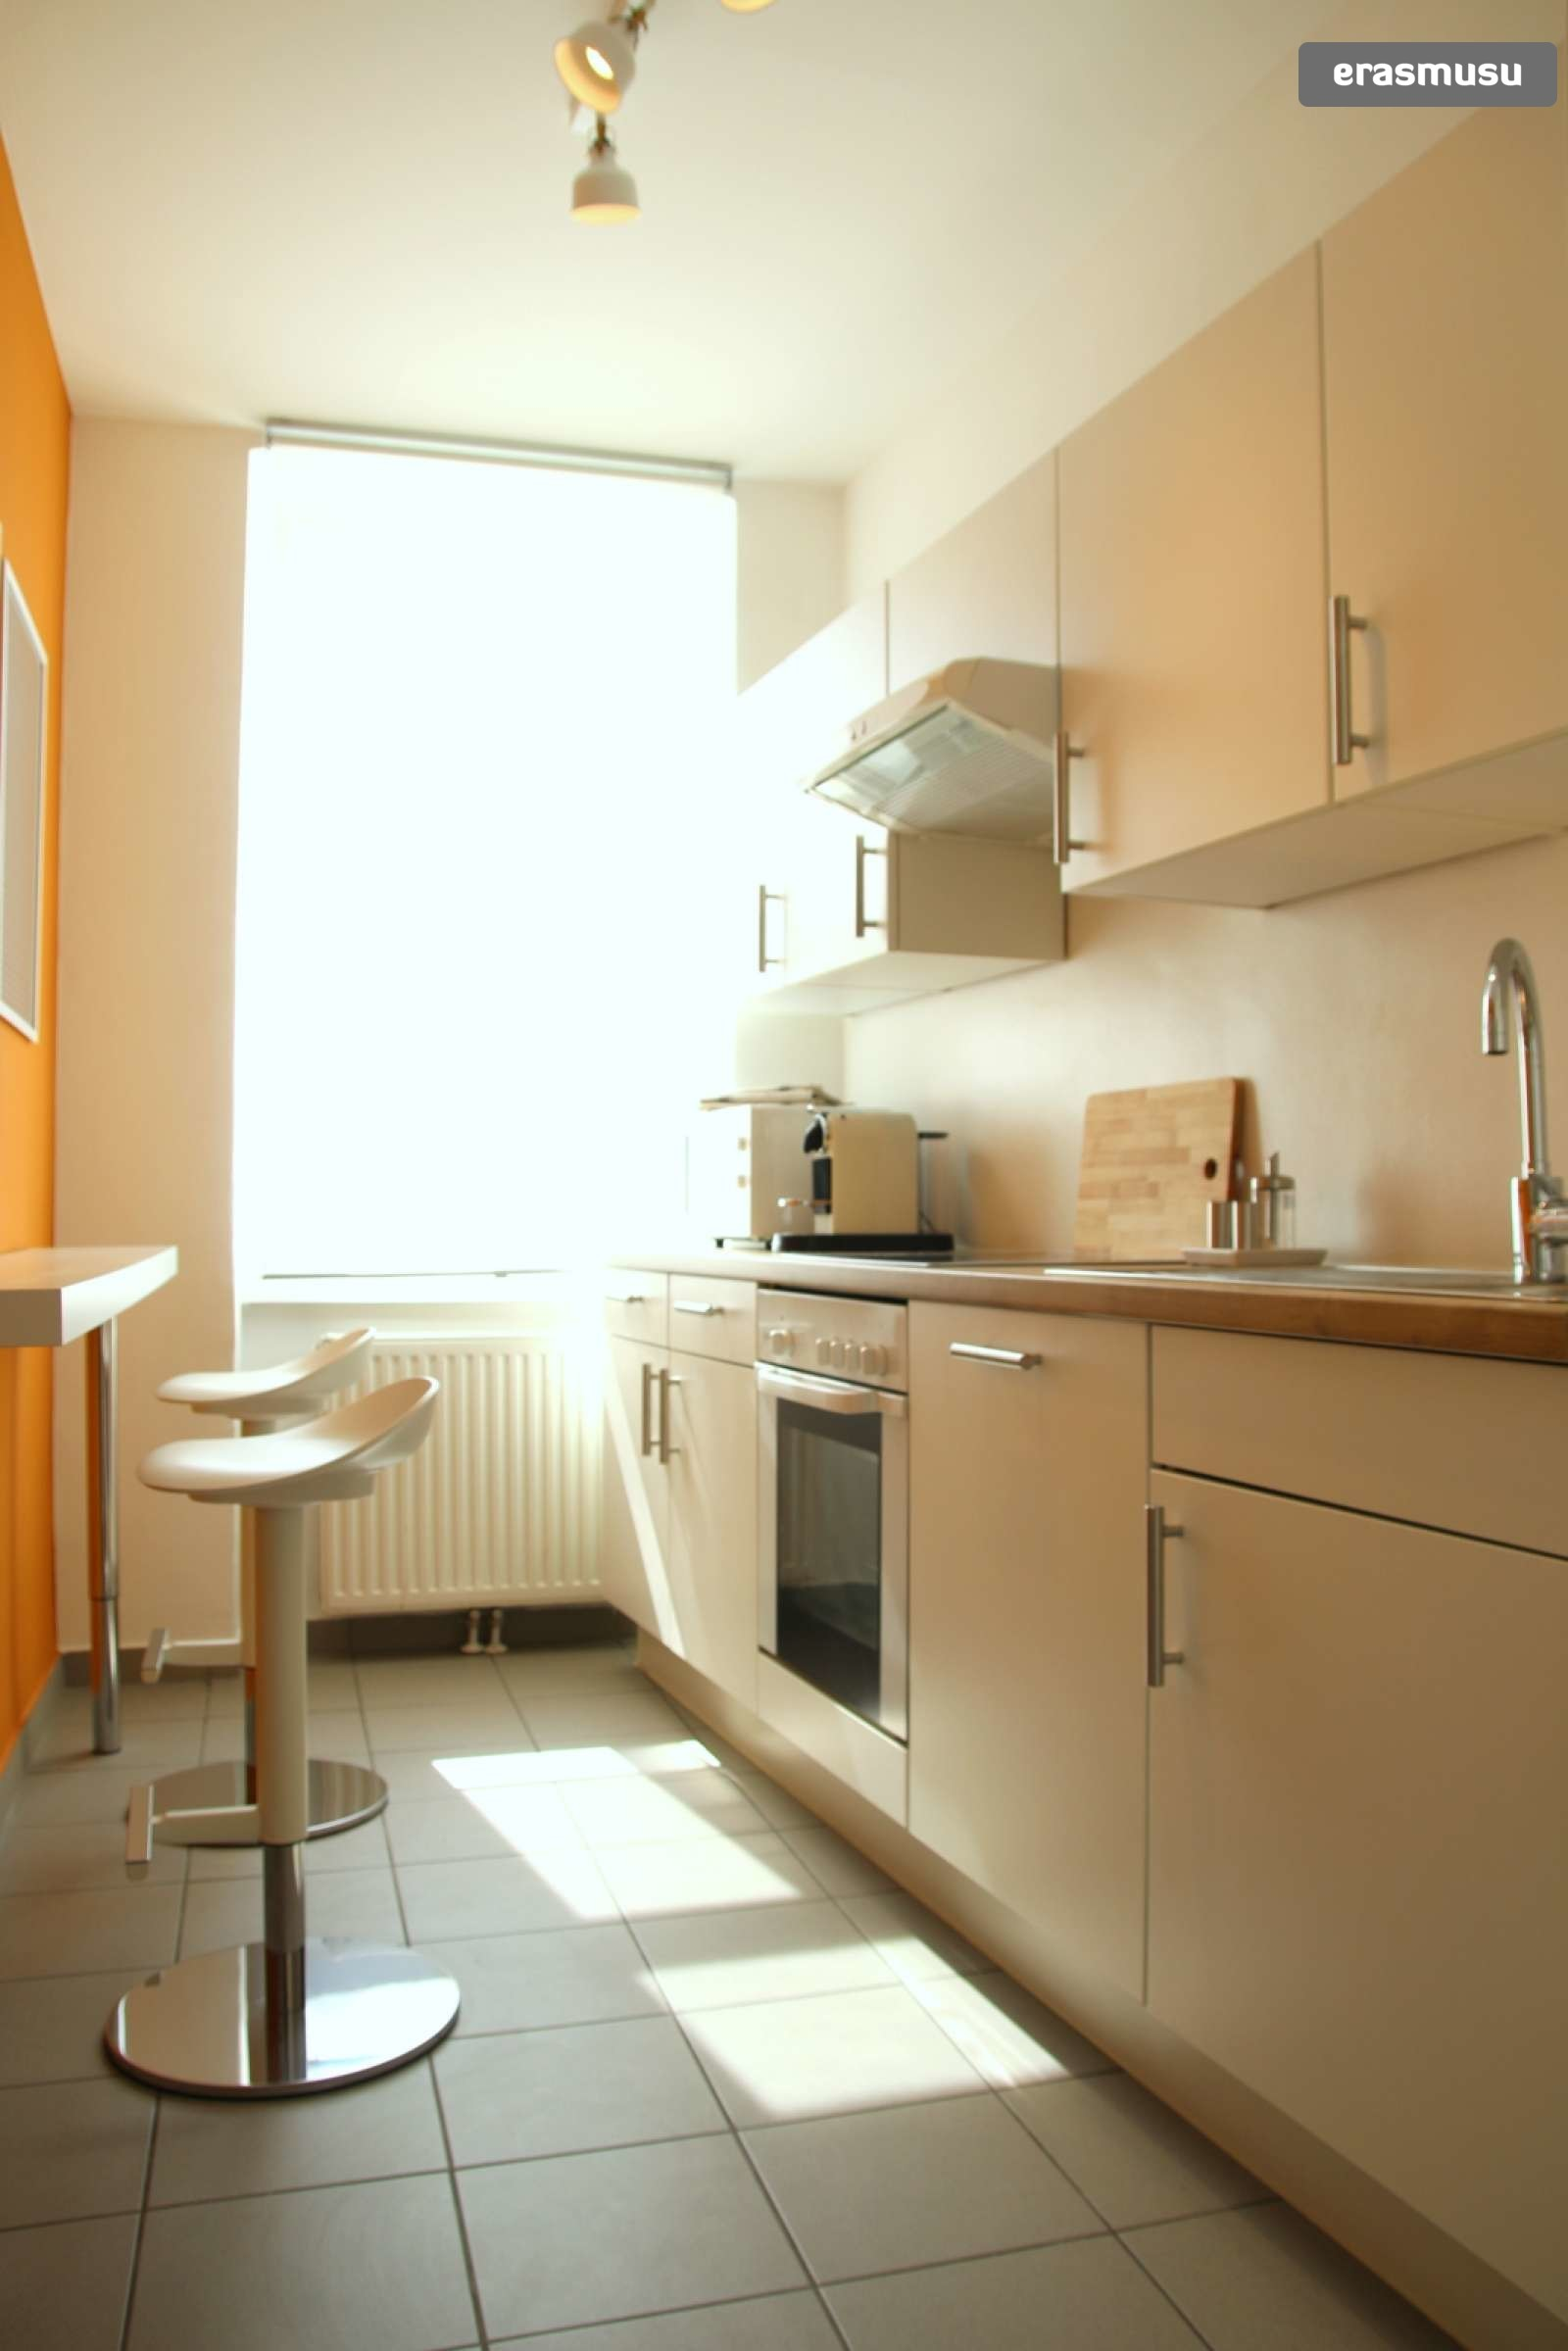 studio-apartment-rent-wahring-9215b6a235b89194f92cba8f42c24b8f